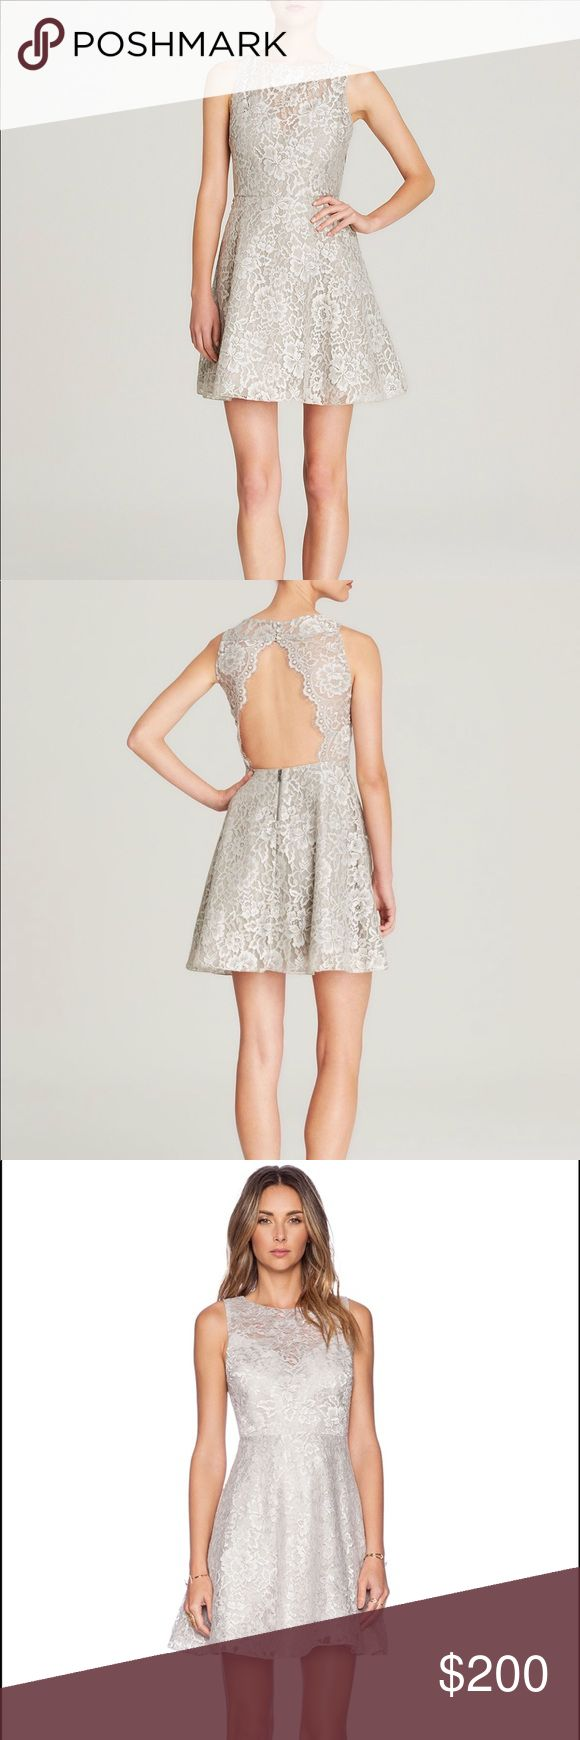 Alice + Olivia Natalia Open-Back Lace Dress Beautiful light gray lace dress with an open back. Lace is see through on the back and above the sweetheart neckline.  Perfect for any special occasion or event. Gorgeous! Alice + Olivia Dresses Mini